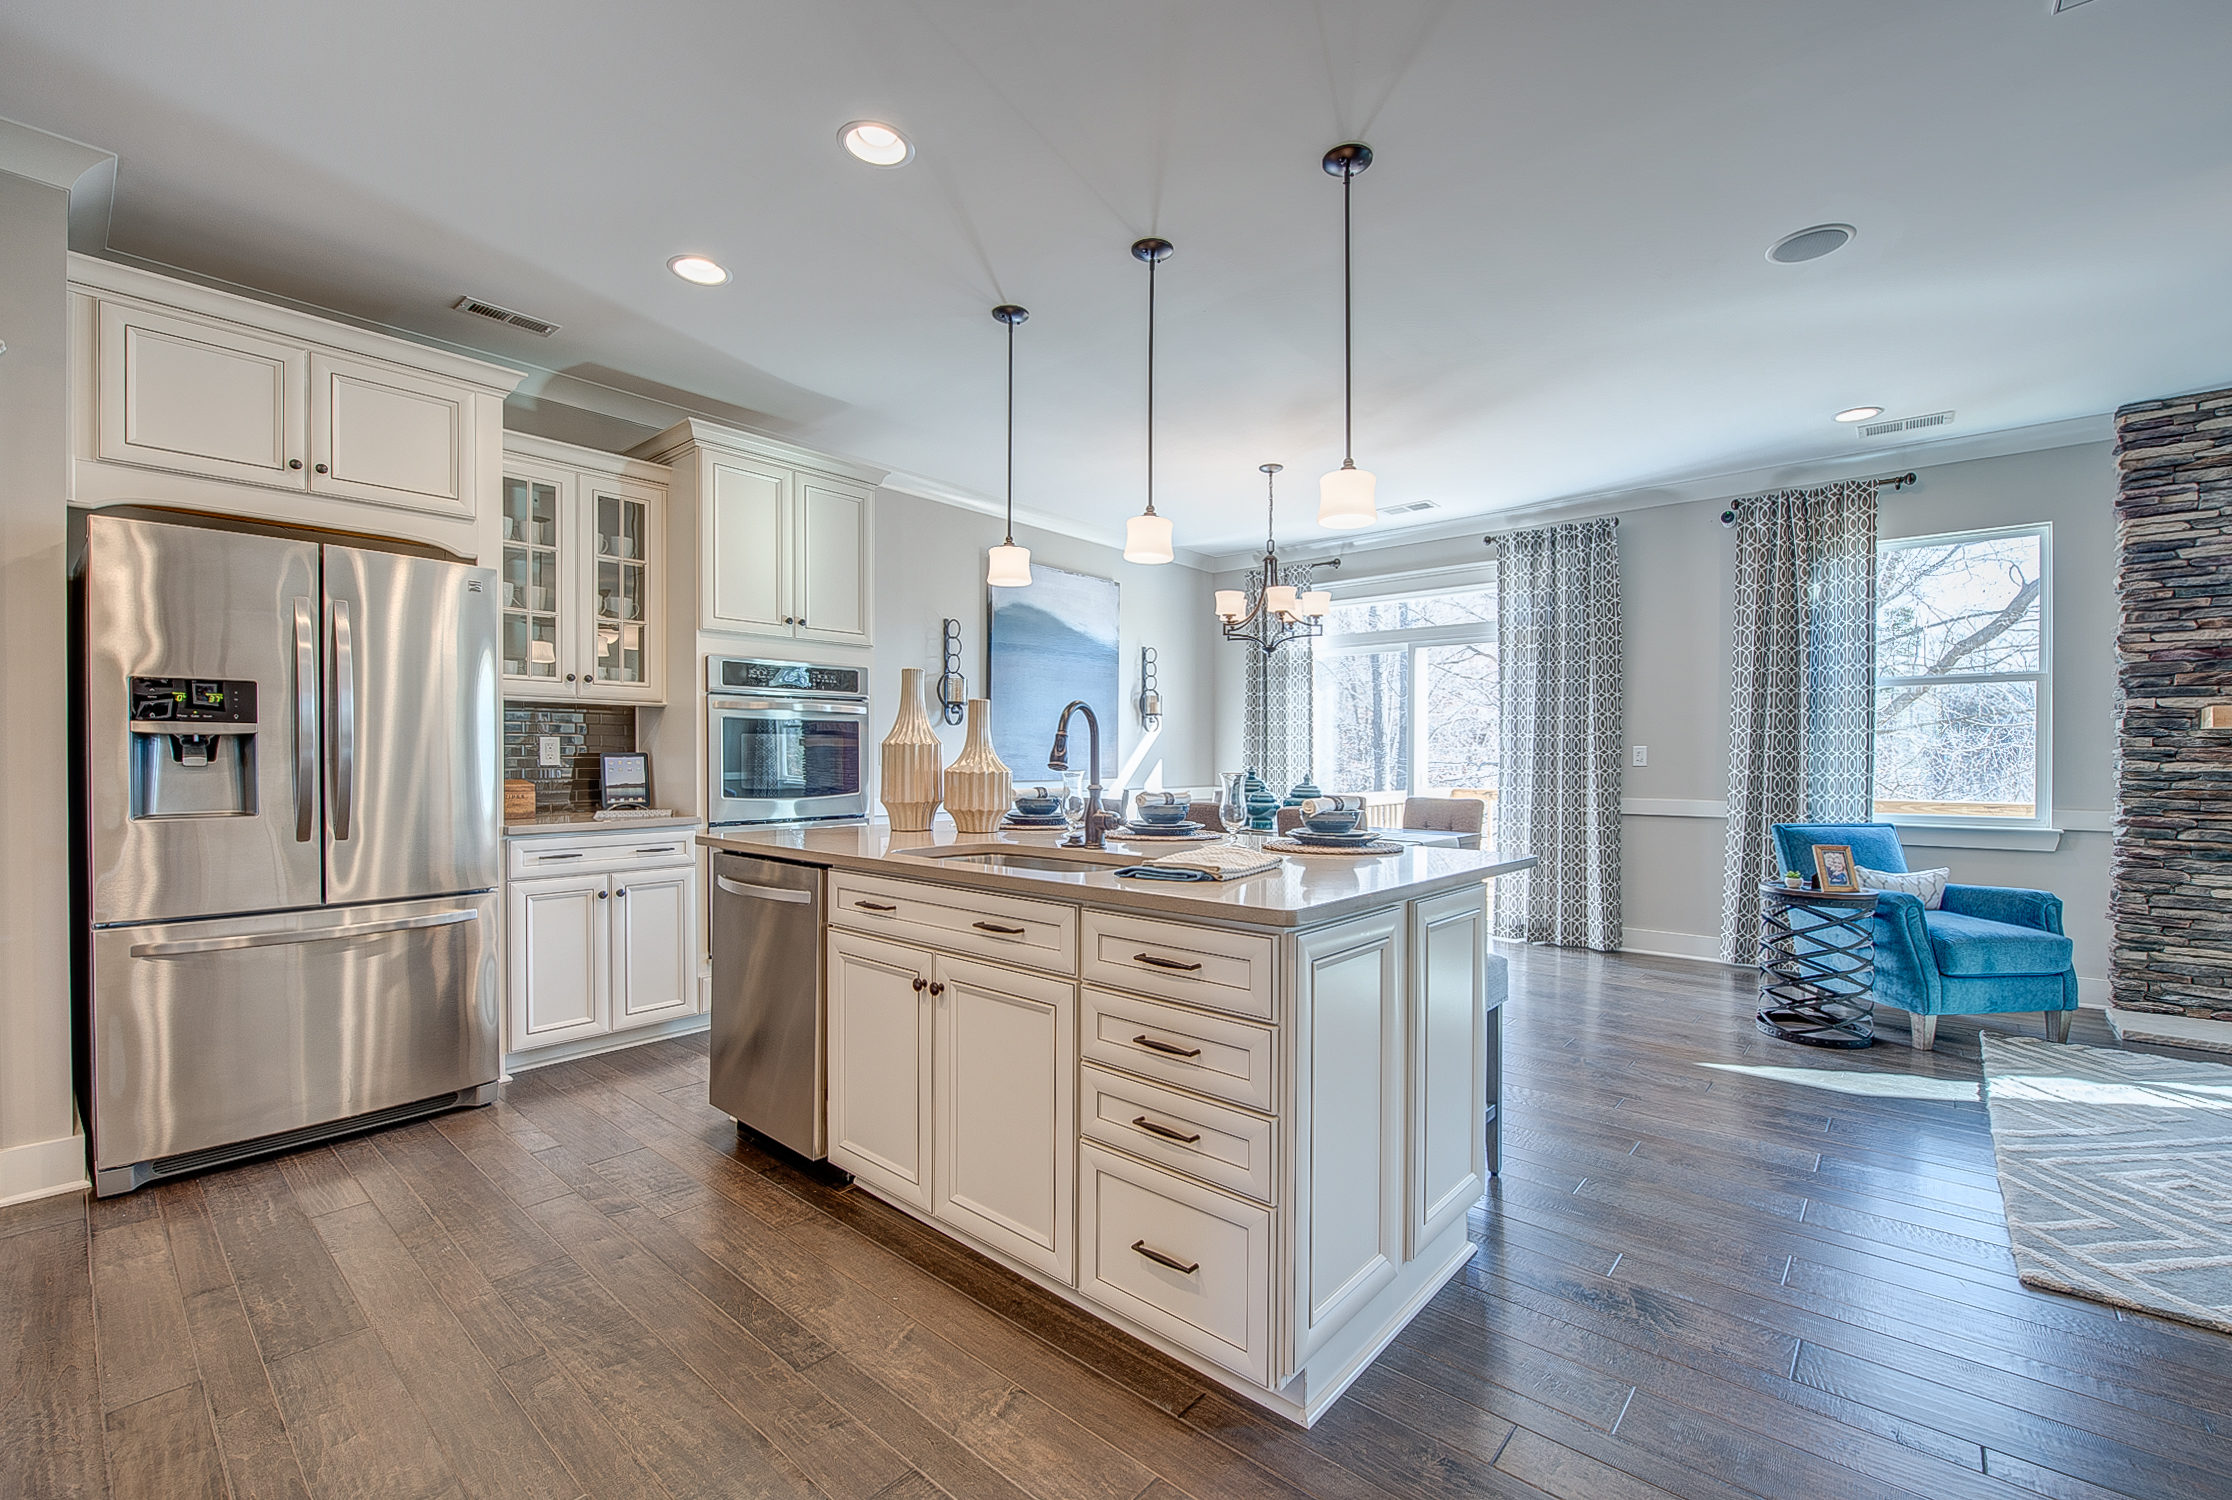 104-bushney-loop-mooresville-print-022-6-kitchen-2232x1500-300dpi_33628712131_o.jpg